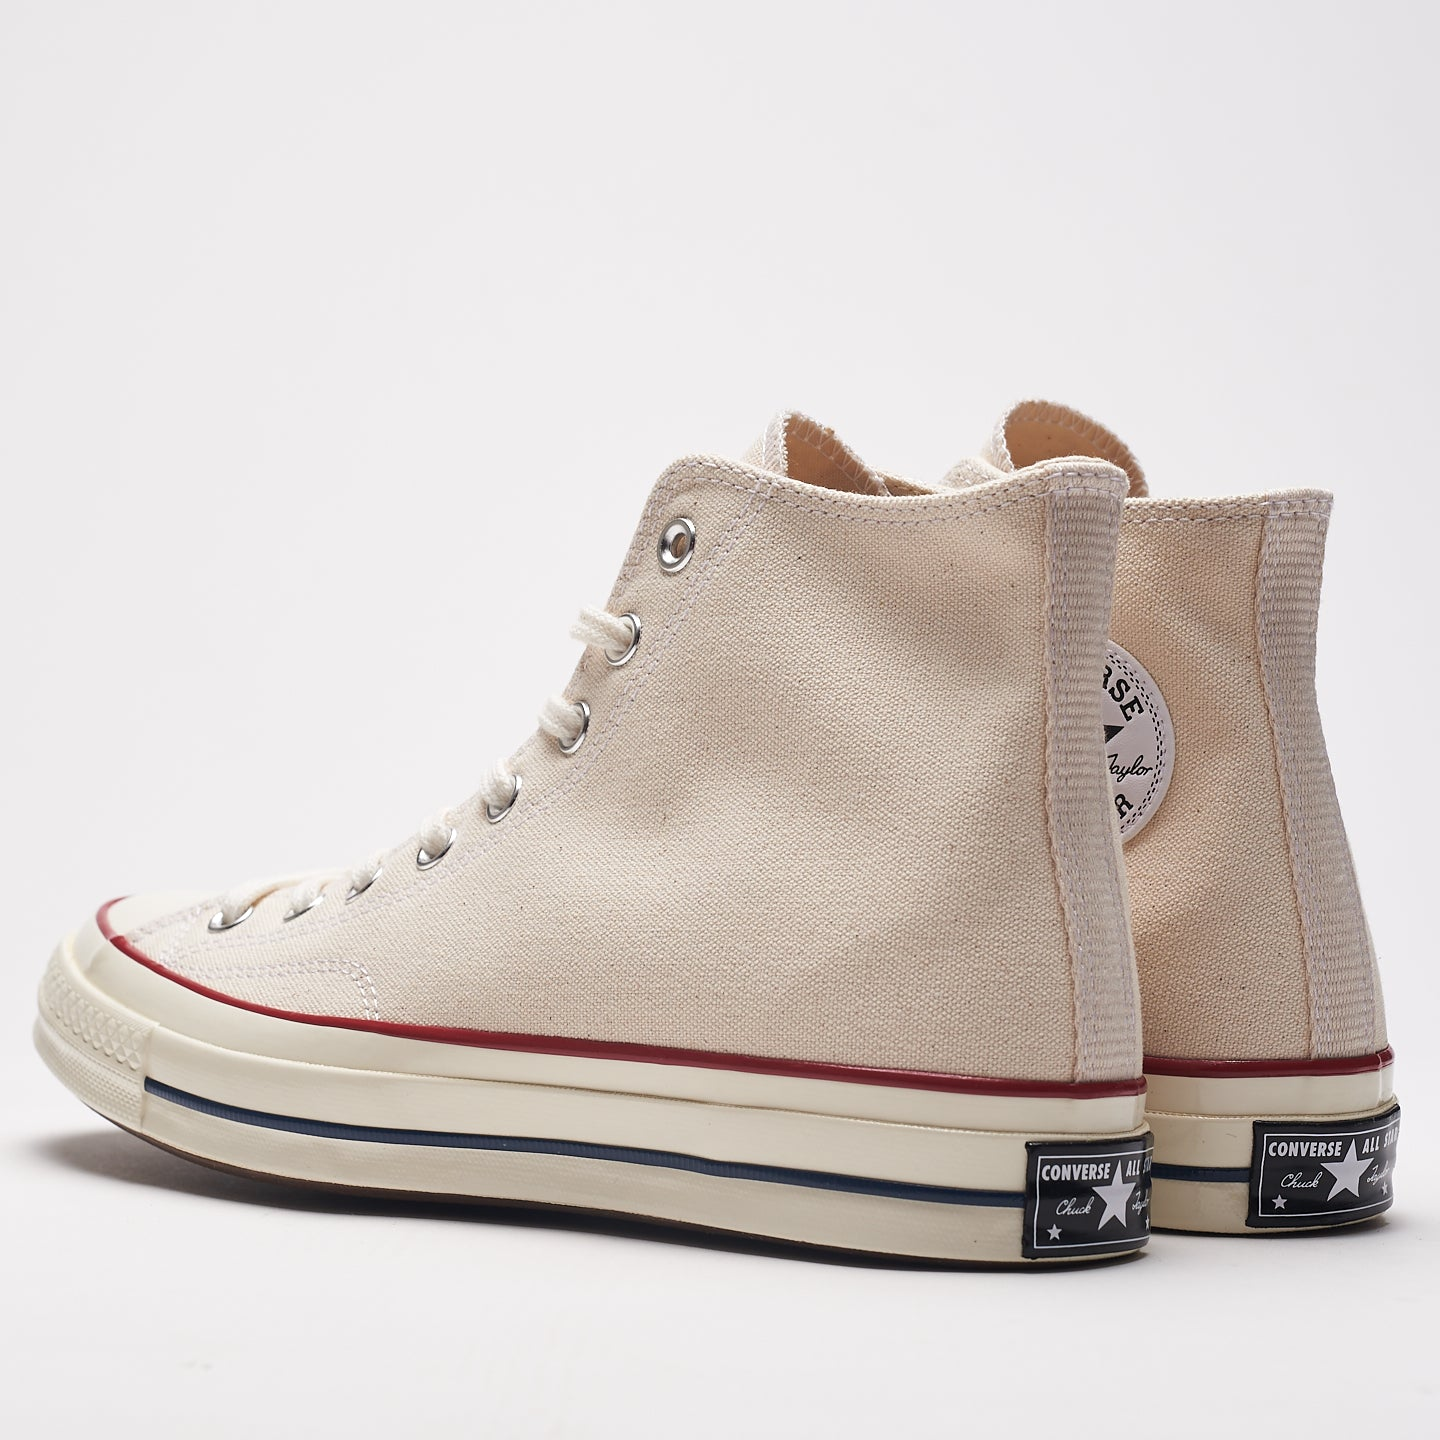 CONVERSE M'S FOOTWEAR CHUCK 70 HIGH TOP PARCHMENT